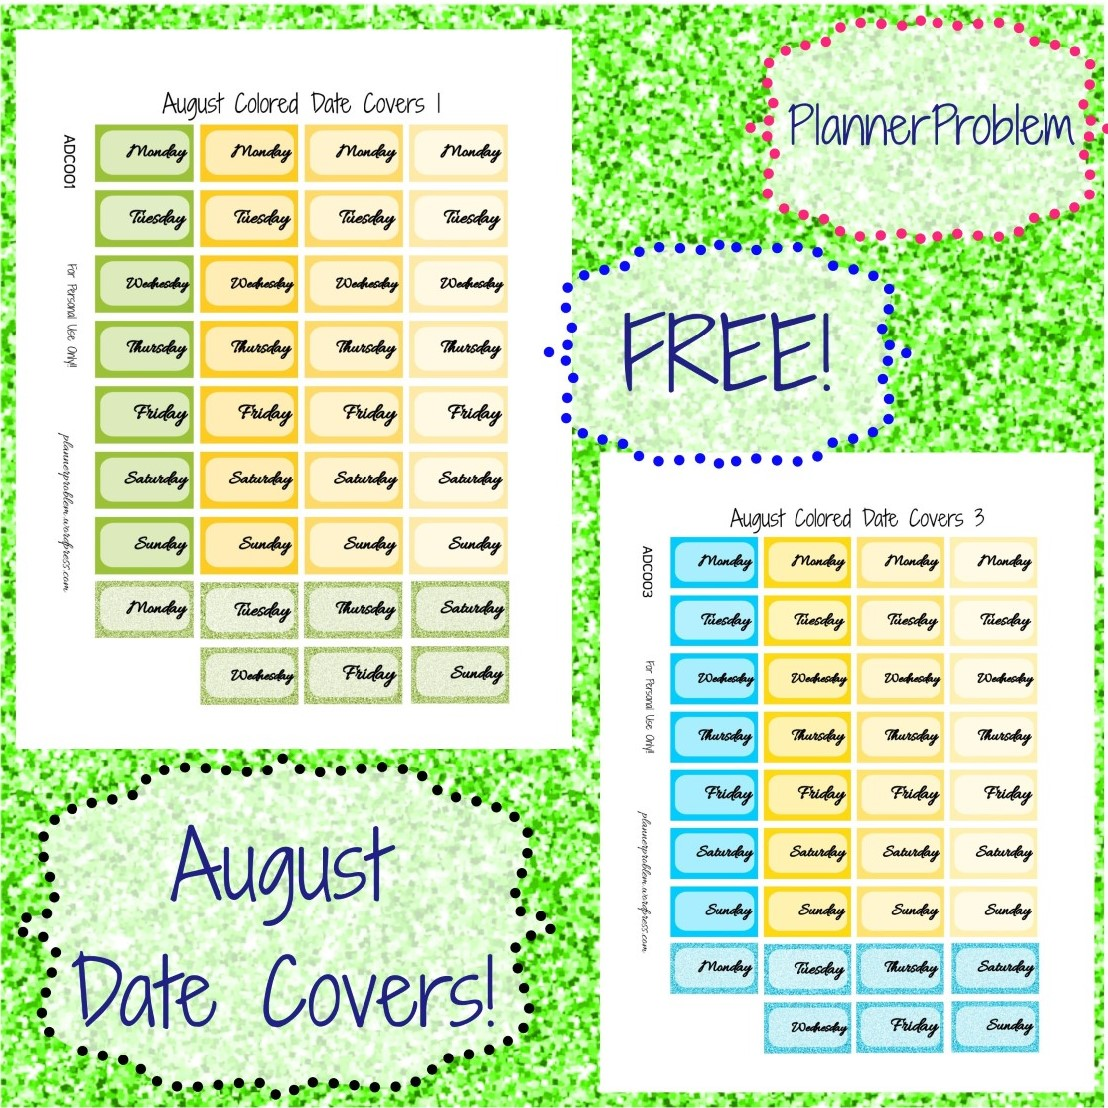 photo relating to Colored Printable Labels identified as August Shades PlannerProblem